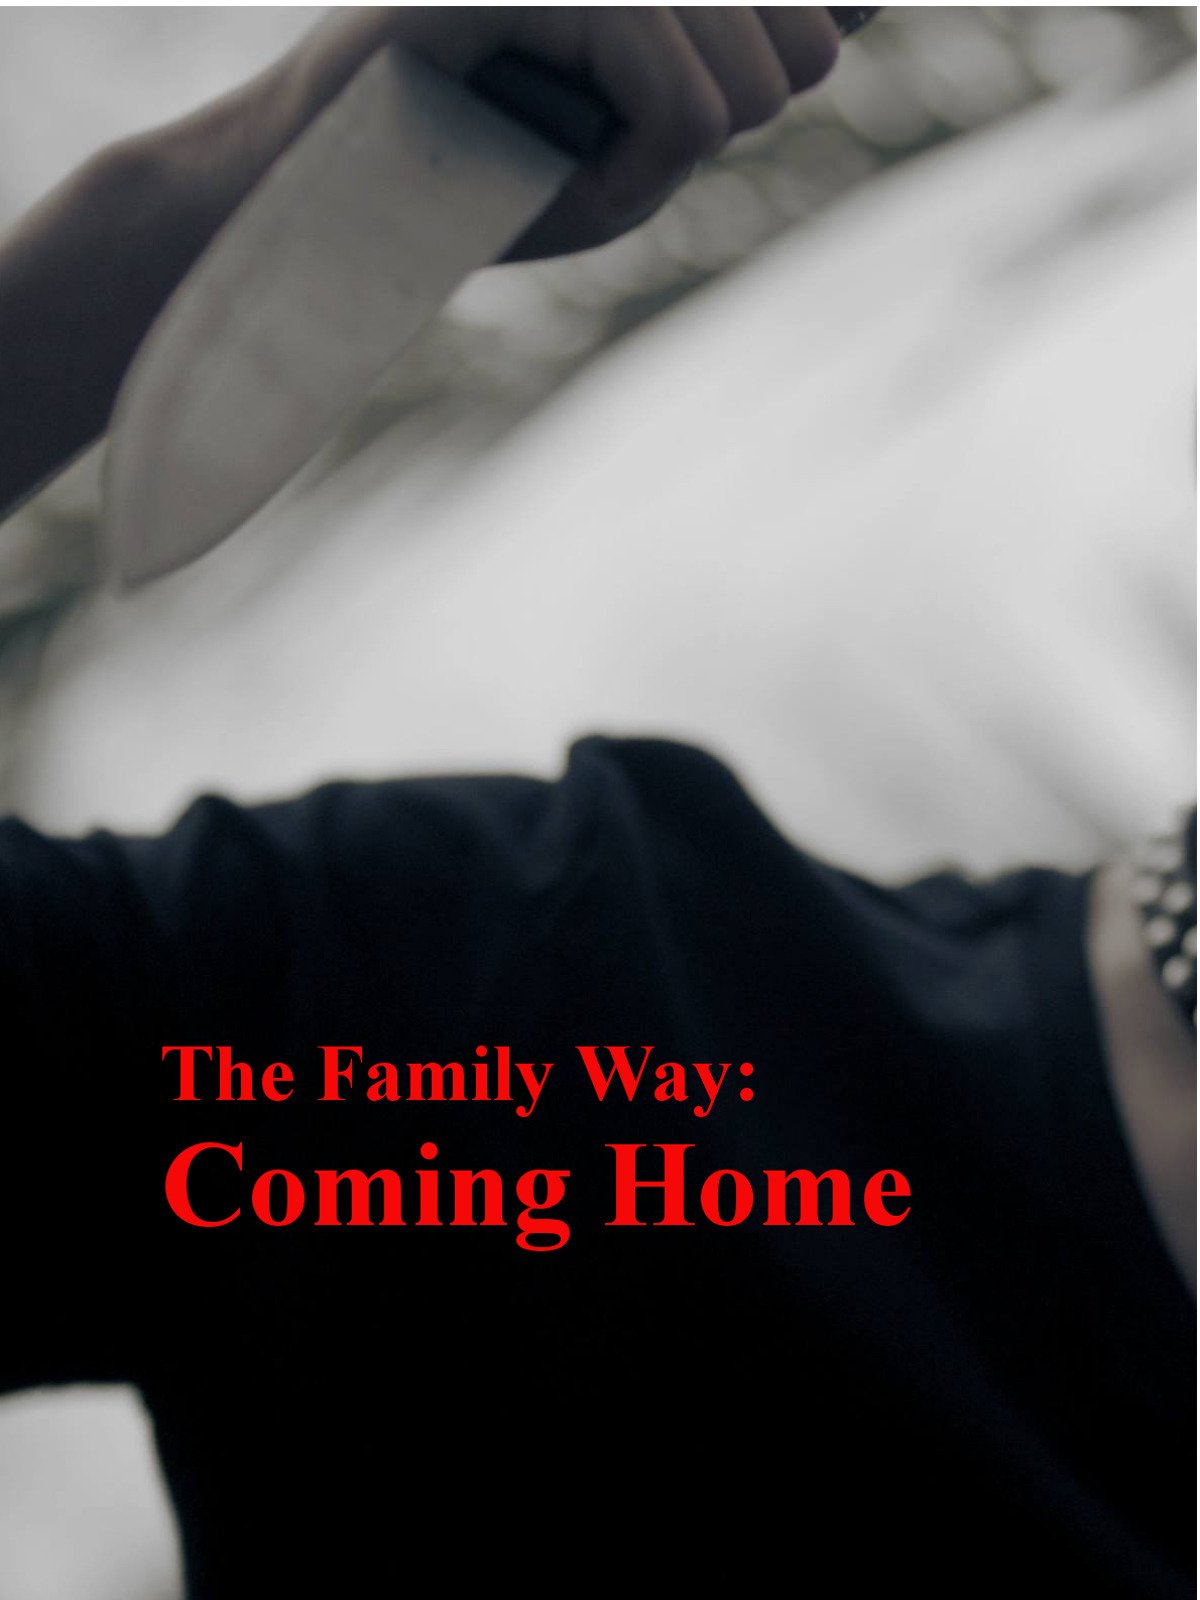 The Family Way: Coming Home